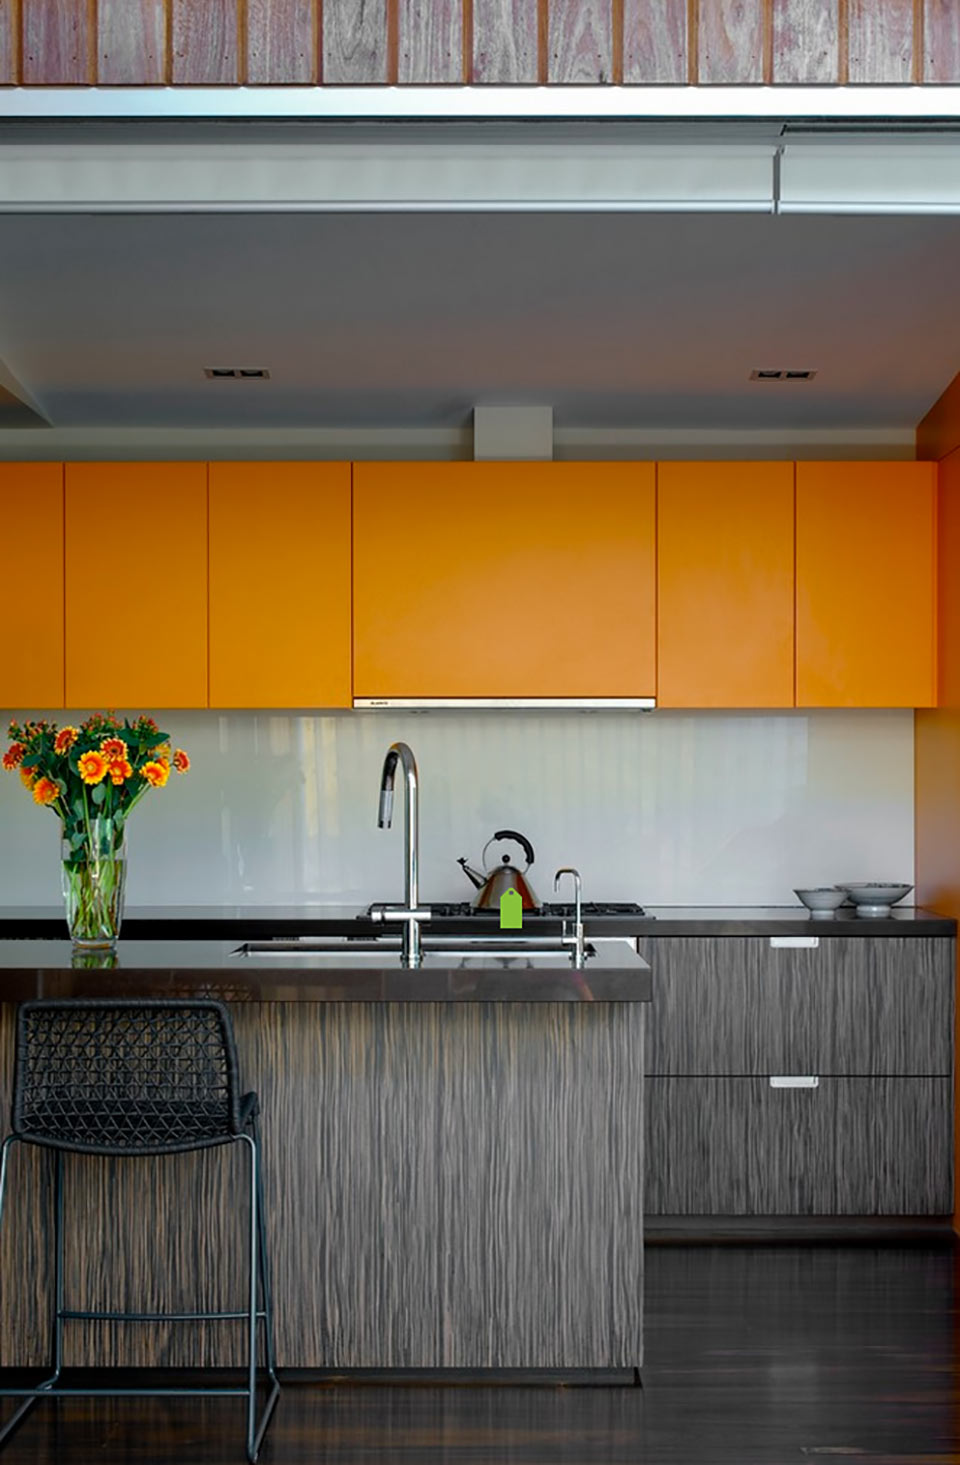 Colourful Kitchens Gocabinets Online Cabinetry Ordering System For Builder Professionals